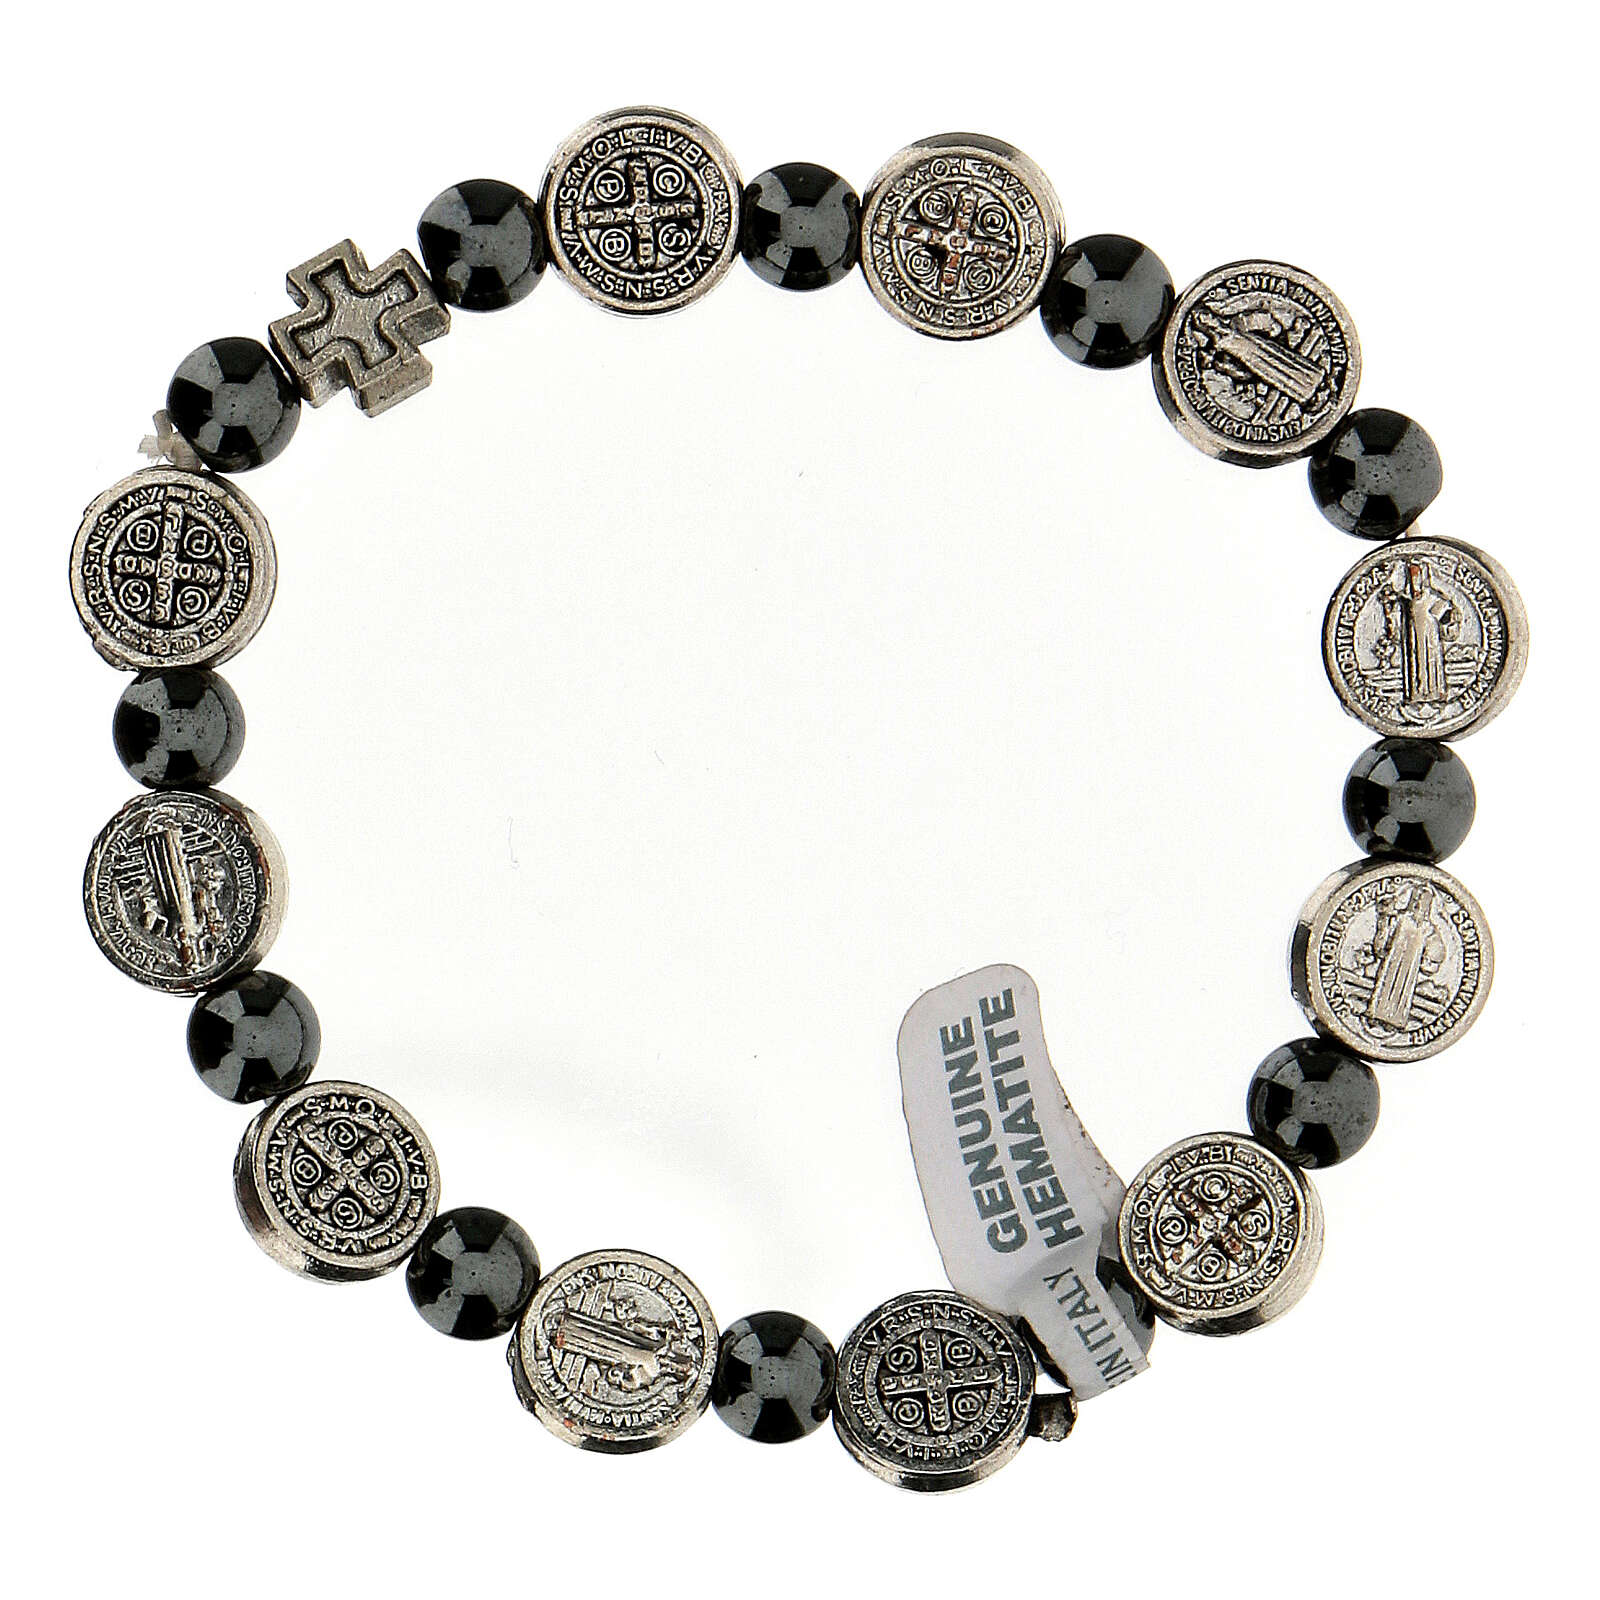 Decade rosary bracelet in hematite 7 mm with zamac medals 4